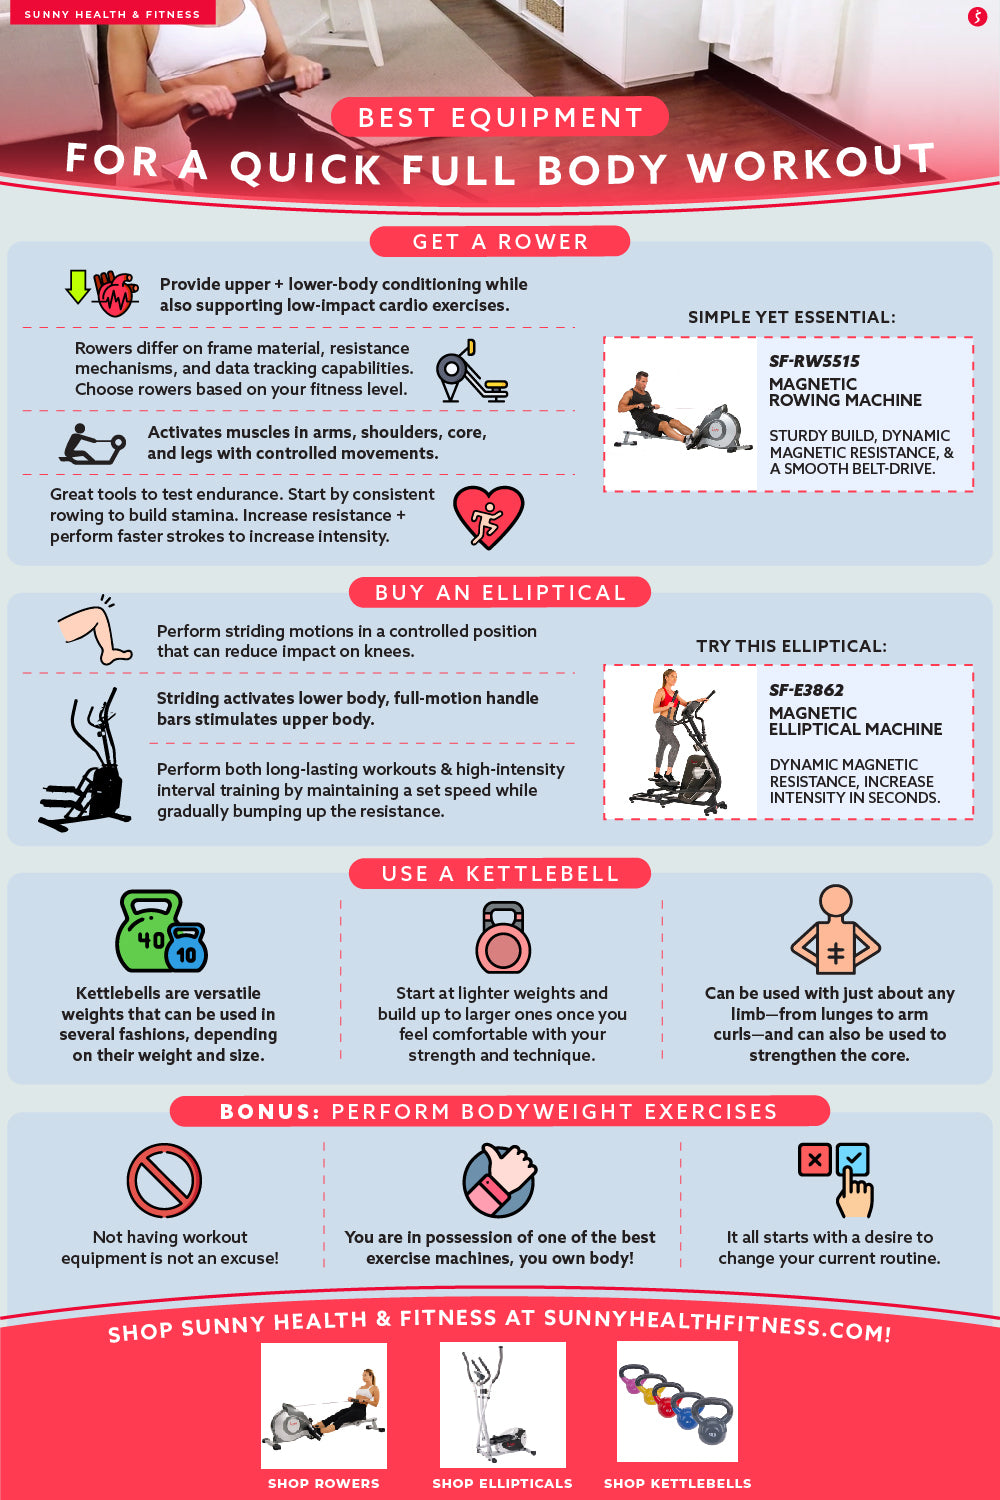 Best Equipment For a Quick Full Body Workout Infographic